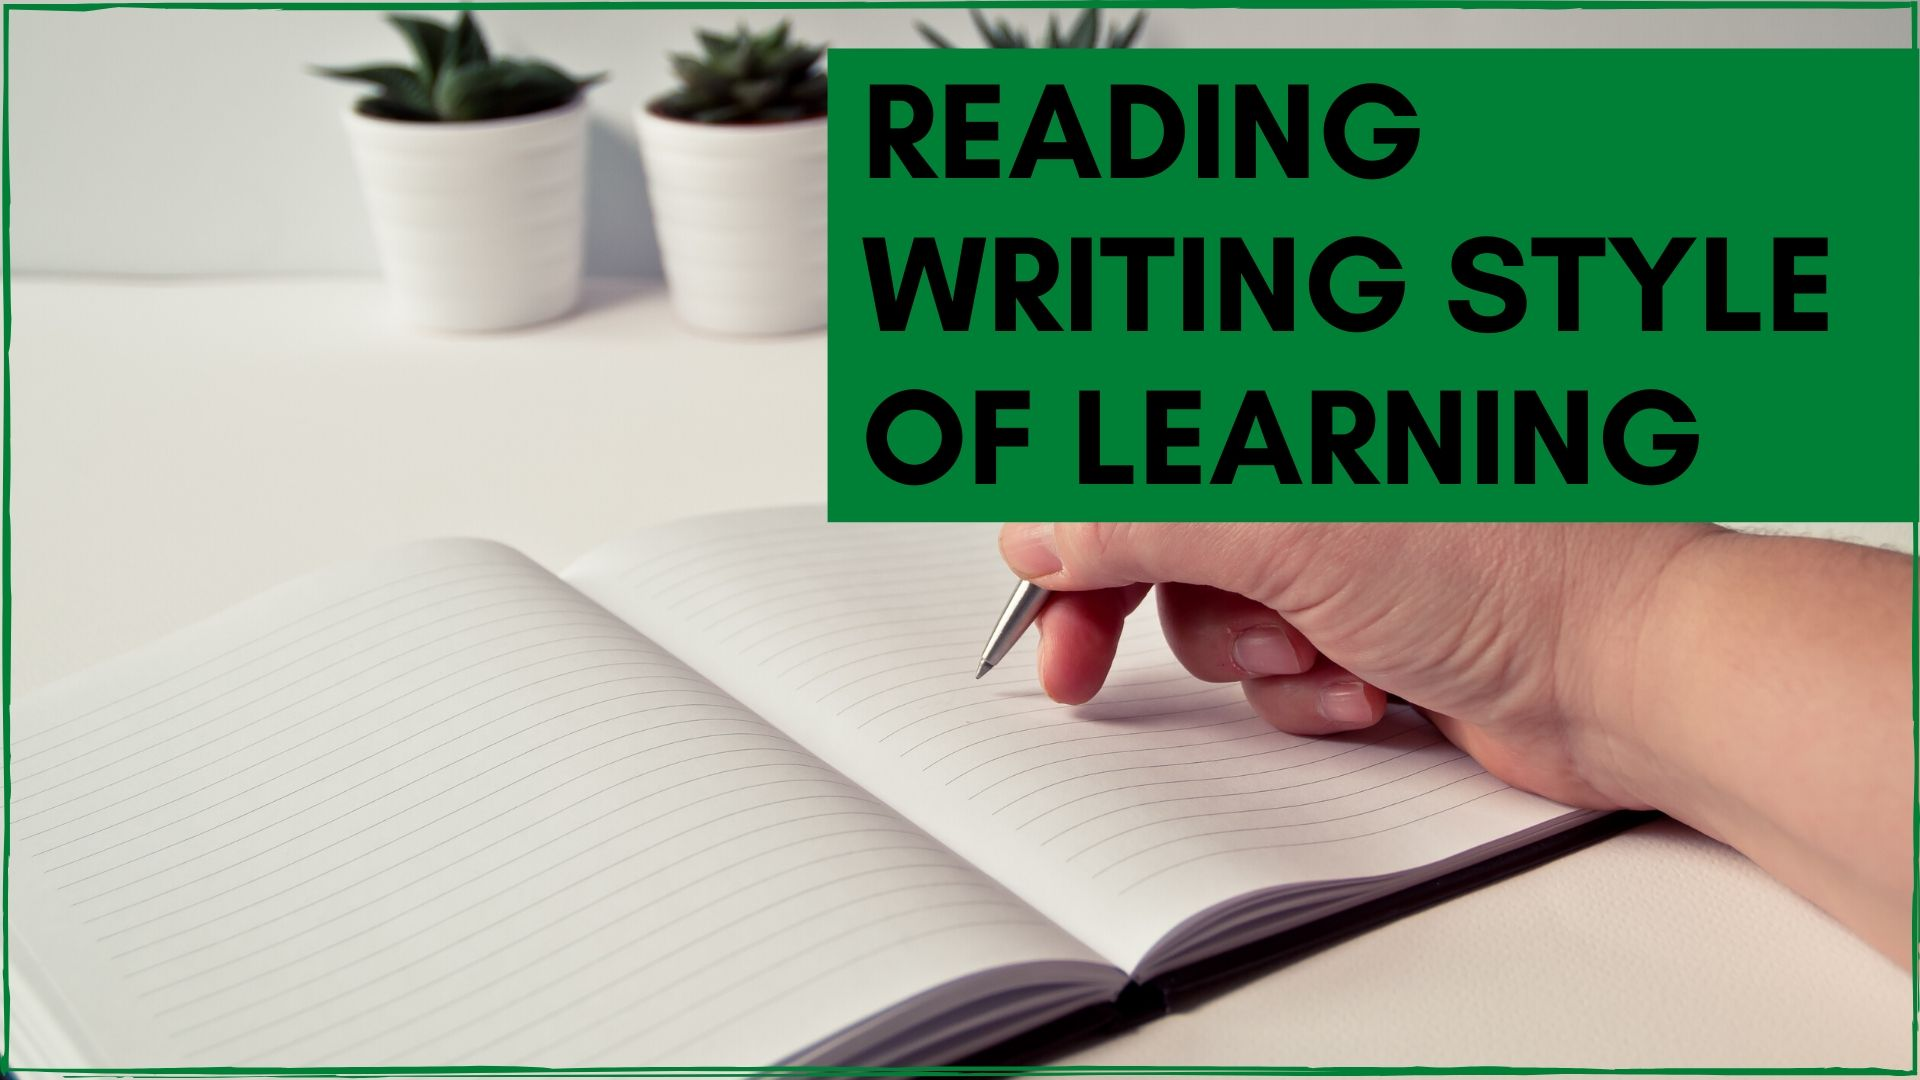 Reading Writing style of learning